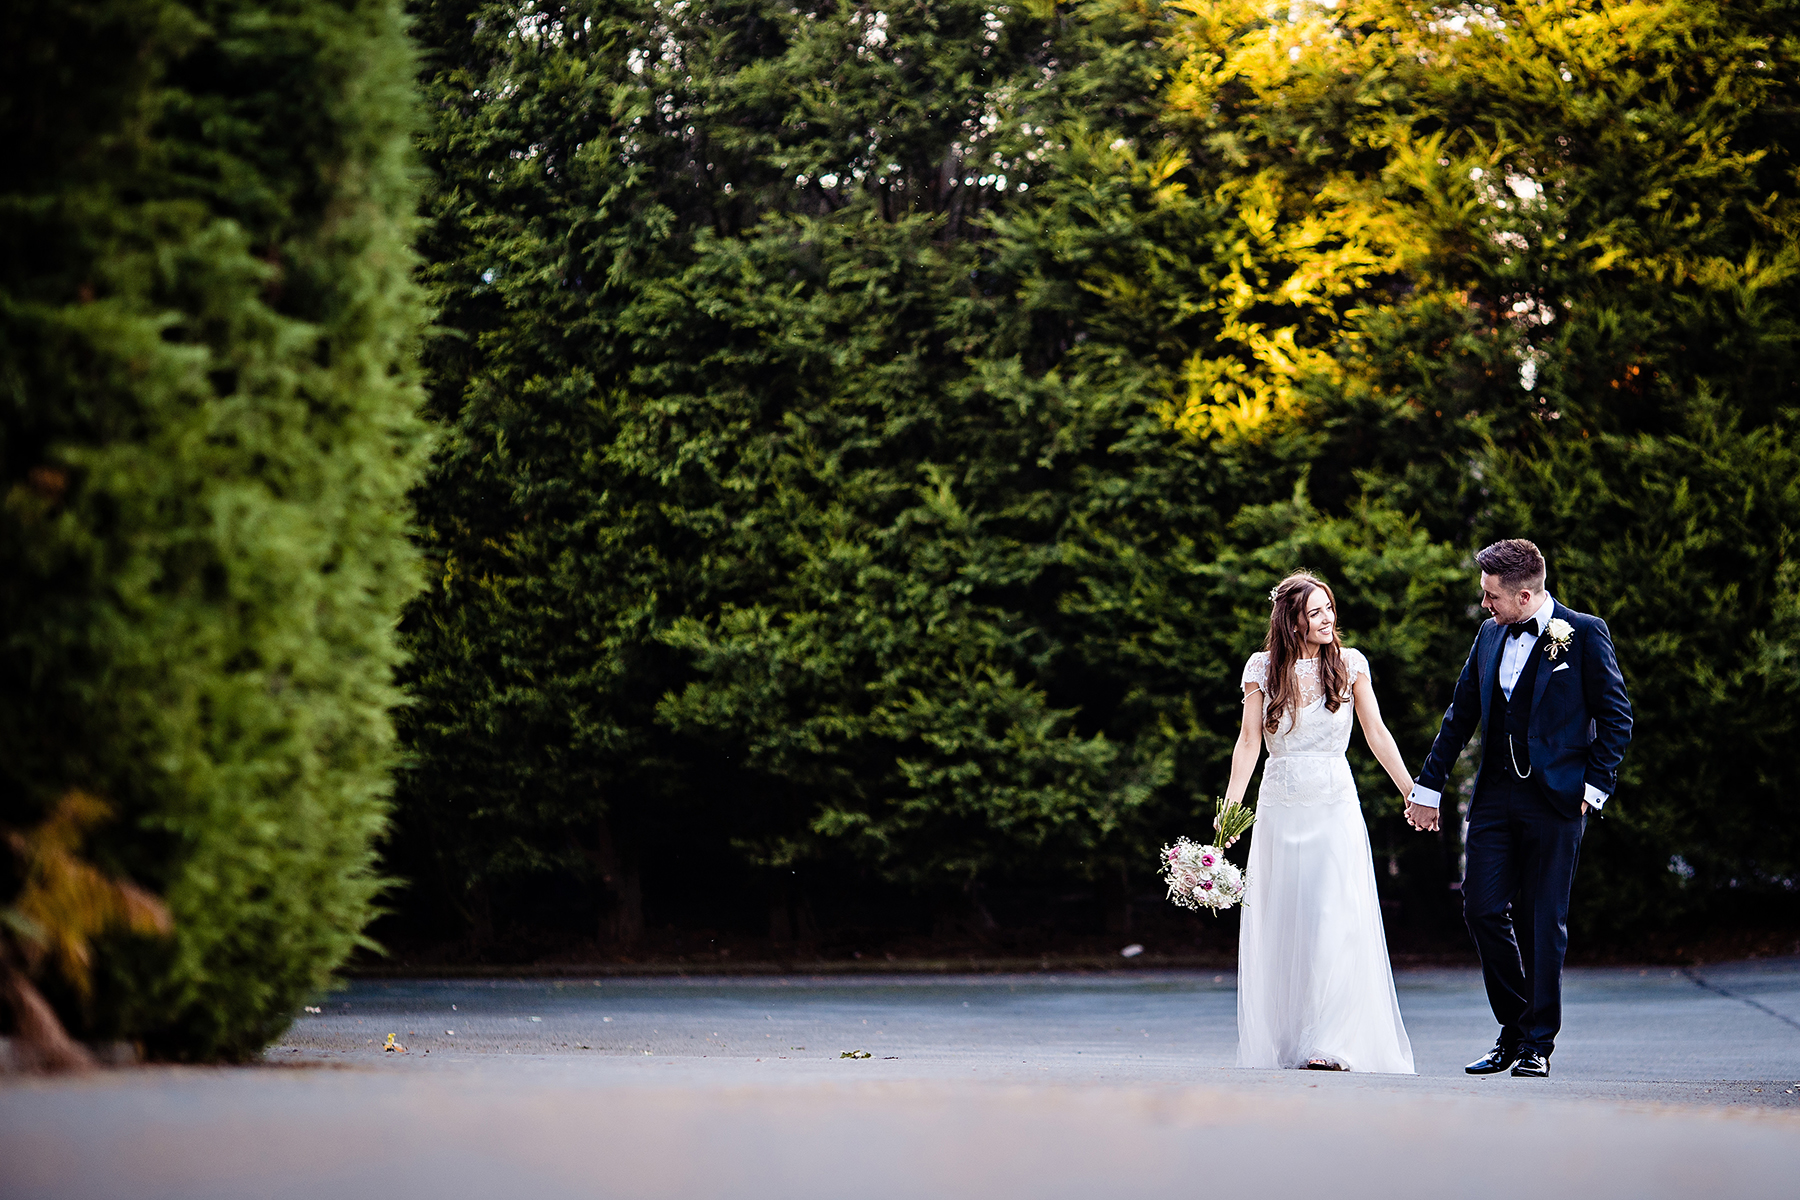 a natural picture of the bride and groom walking